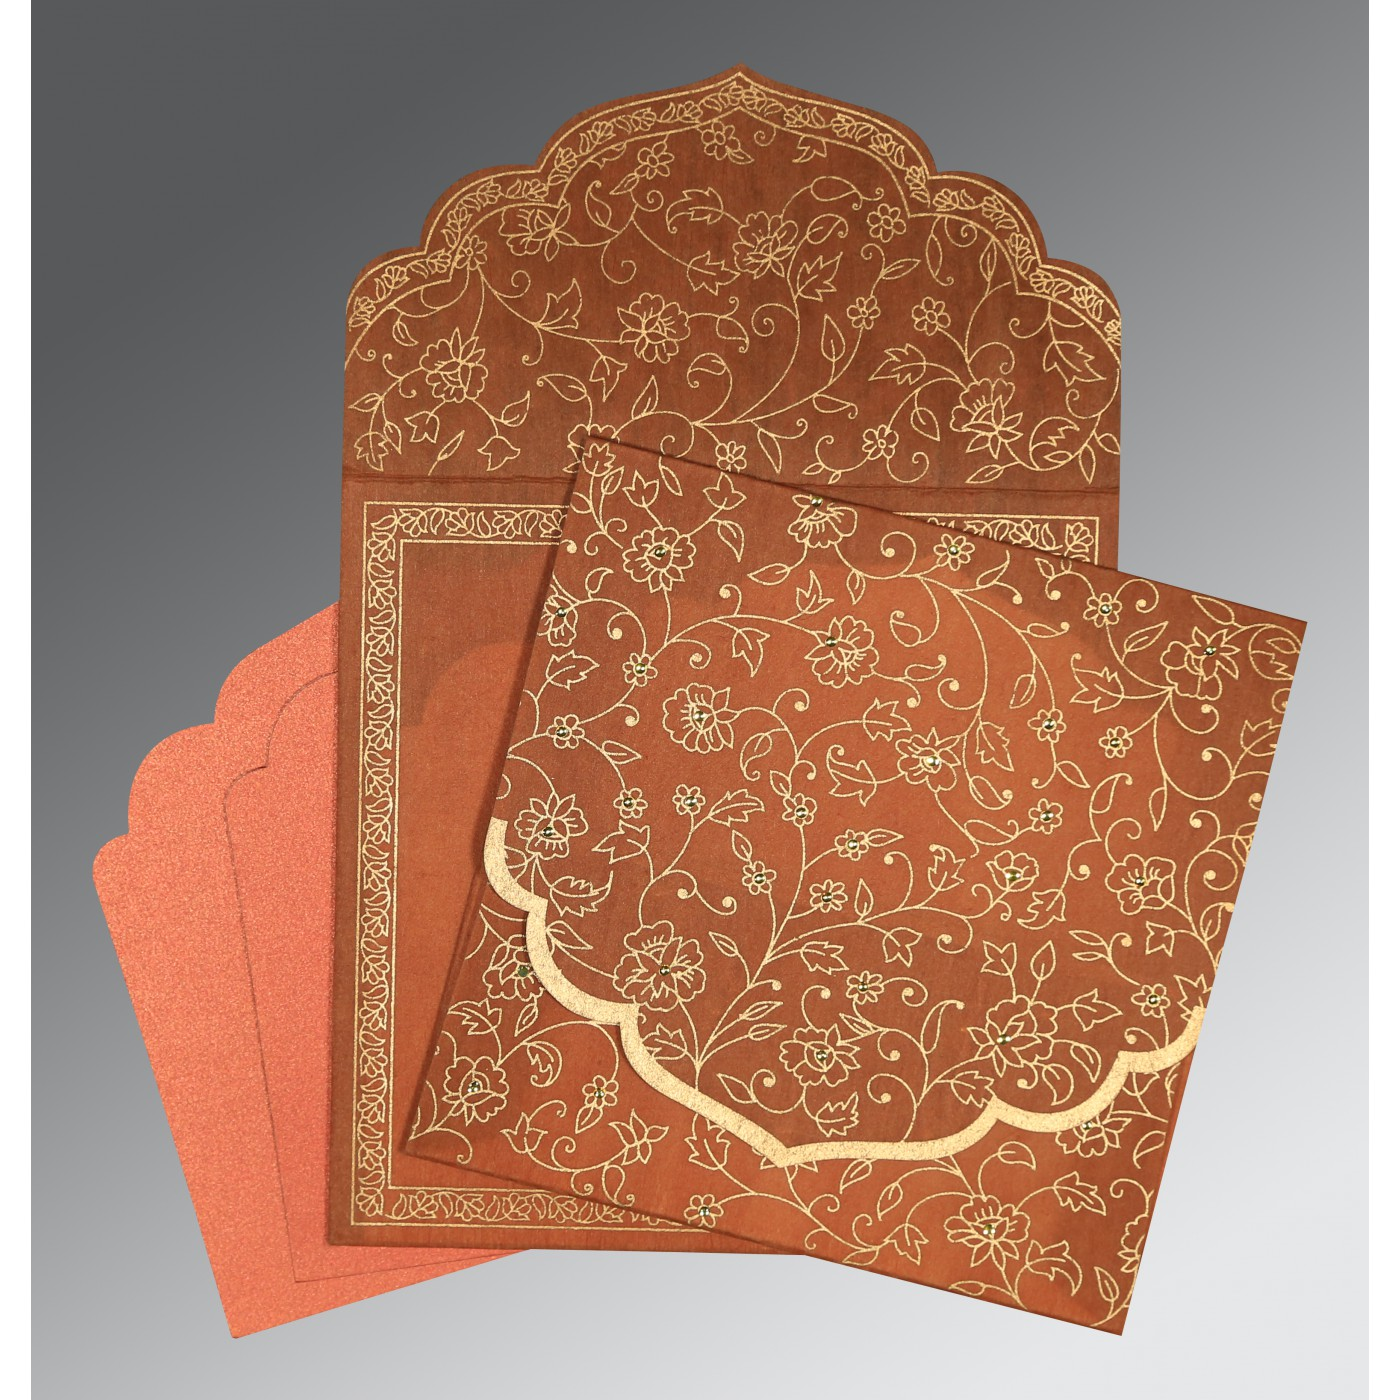 AUTUMN ORANGE WOOLY FLORAL THEMED - SCREEN PRINTED WEDDING INVITATION : C-8211H - 123WeddingCards